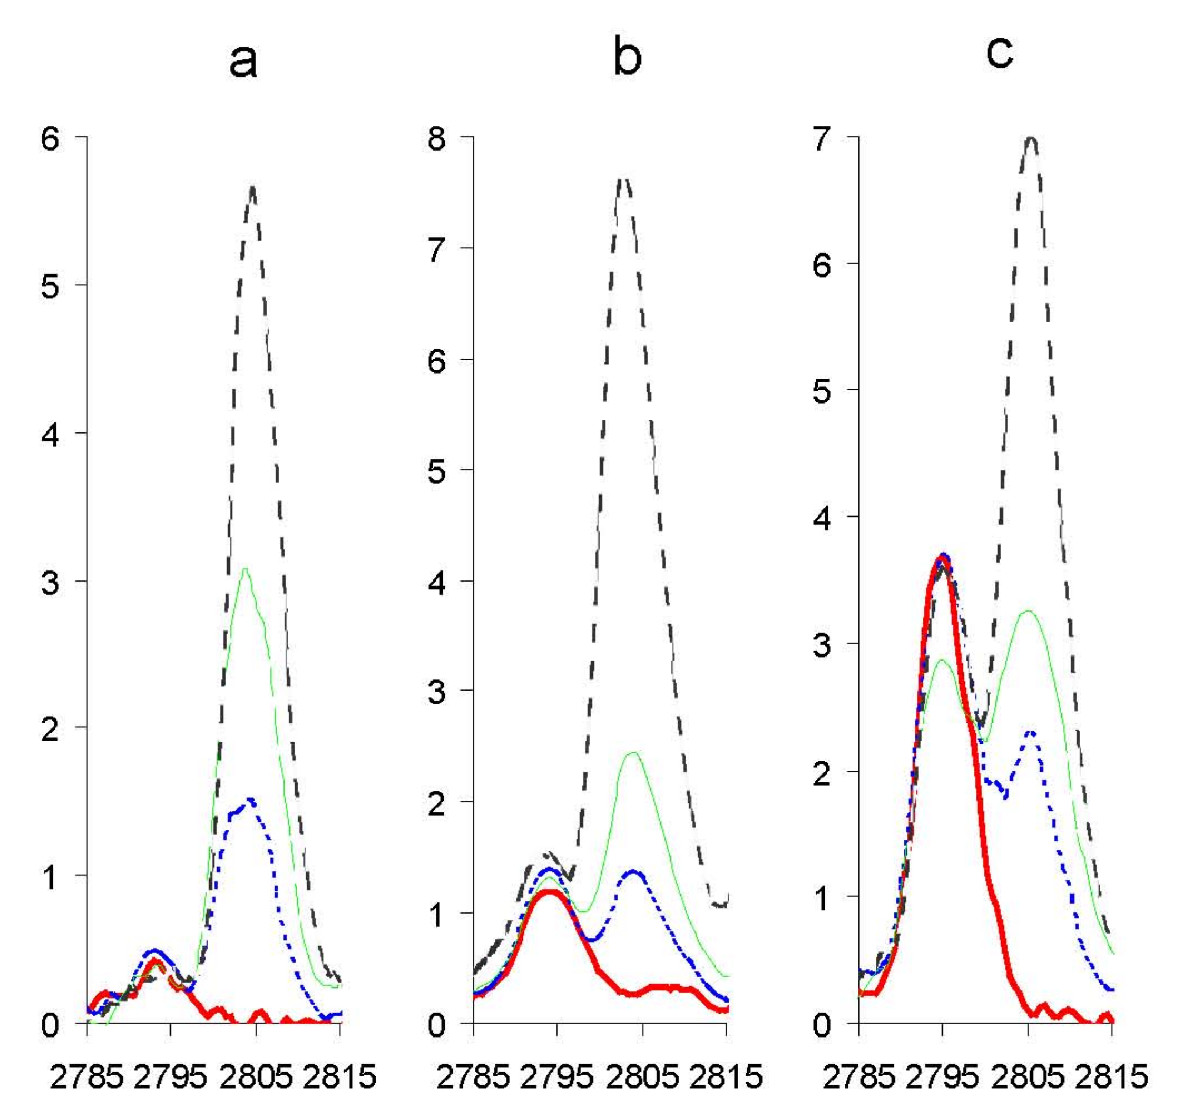 http://static-content.springer.com/image/art%3A10.1186%2F1477-5956-6-28/MediaObjects/12953_2008_Article_96_Fig5_HTML.jpg